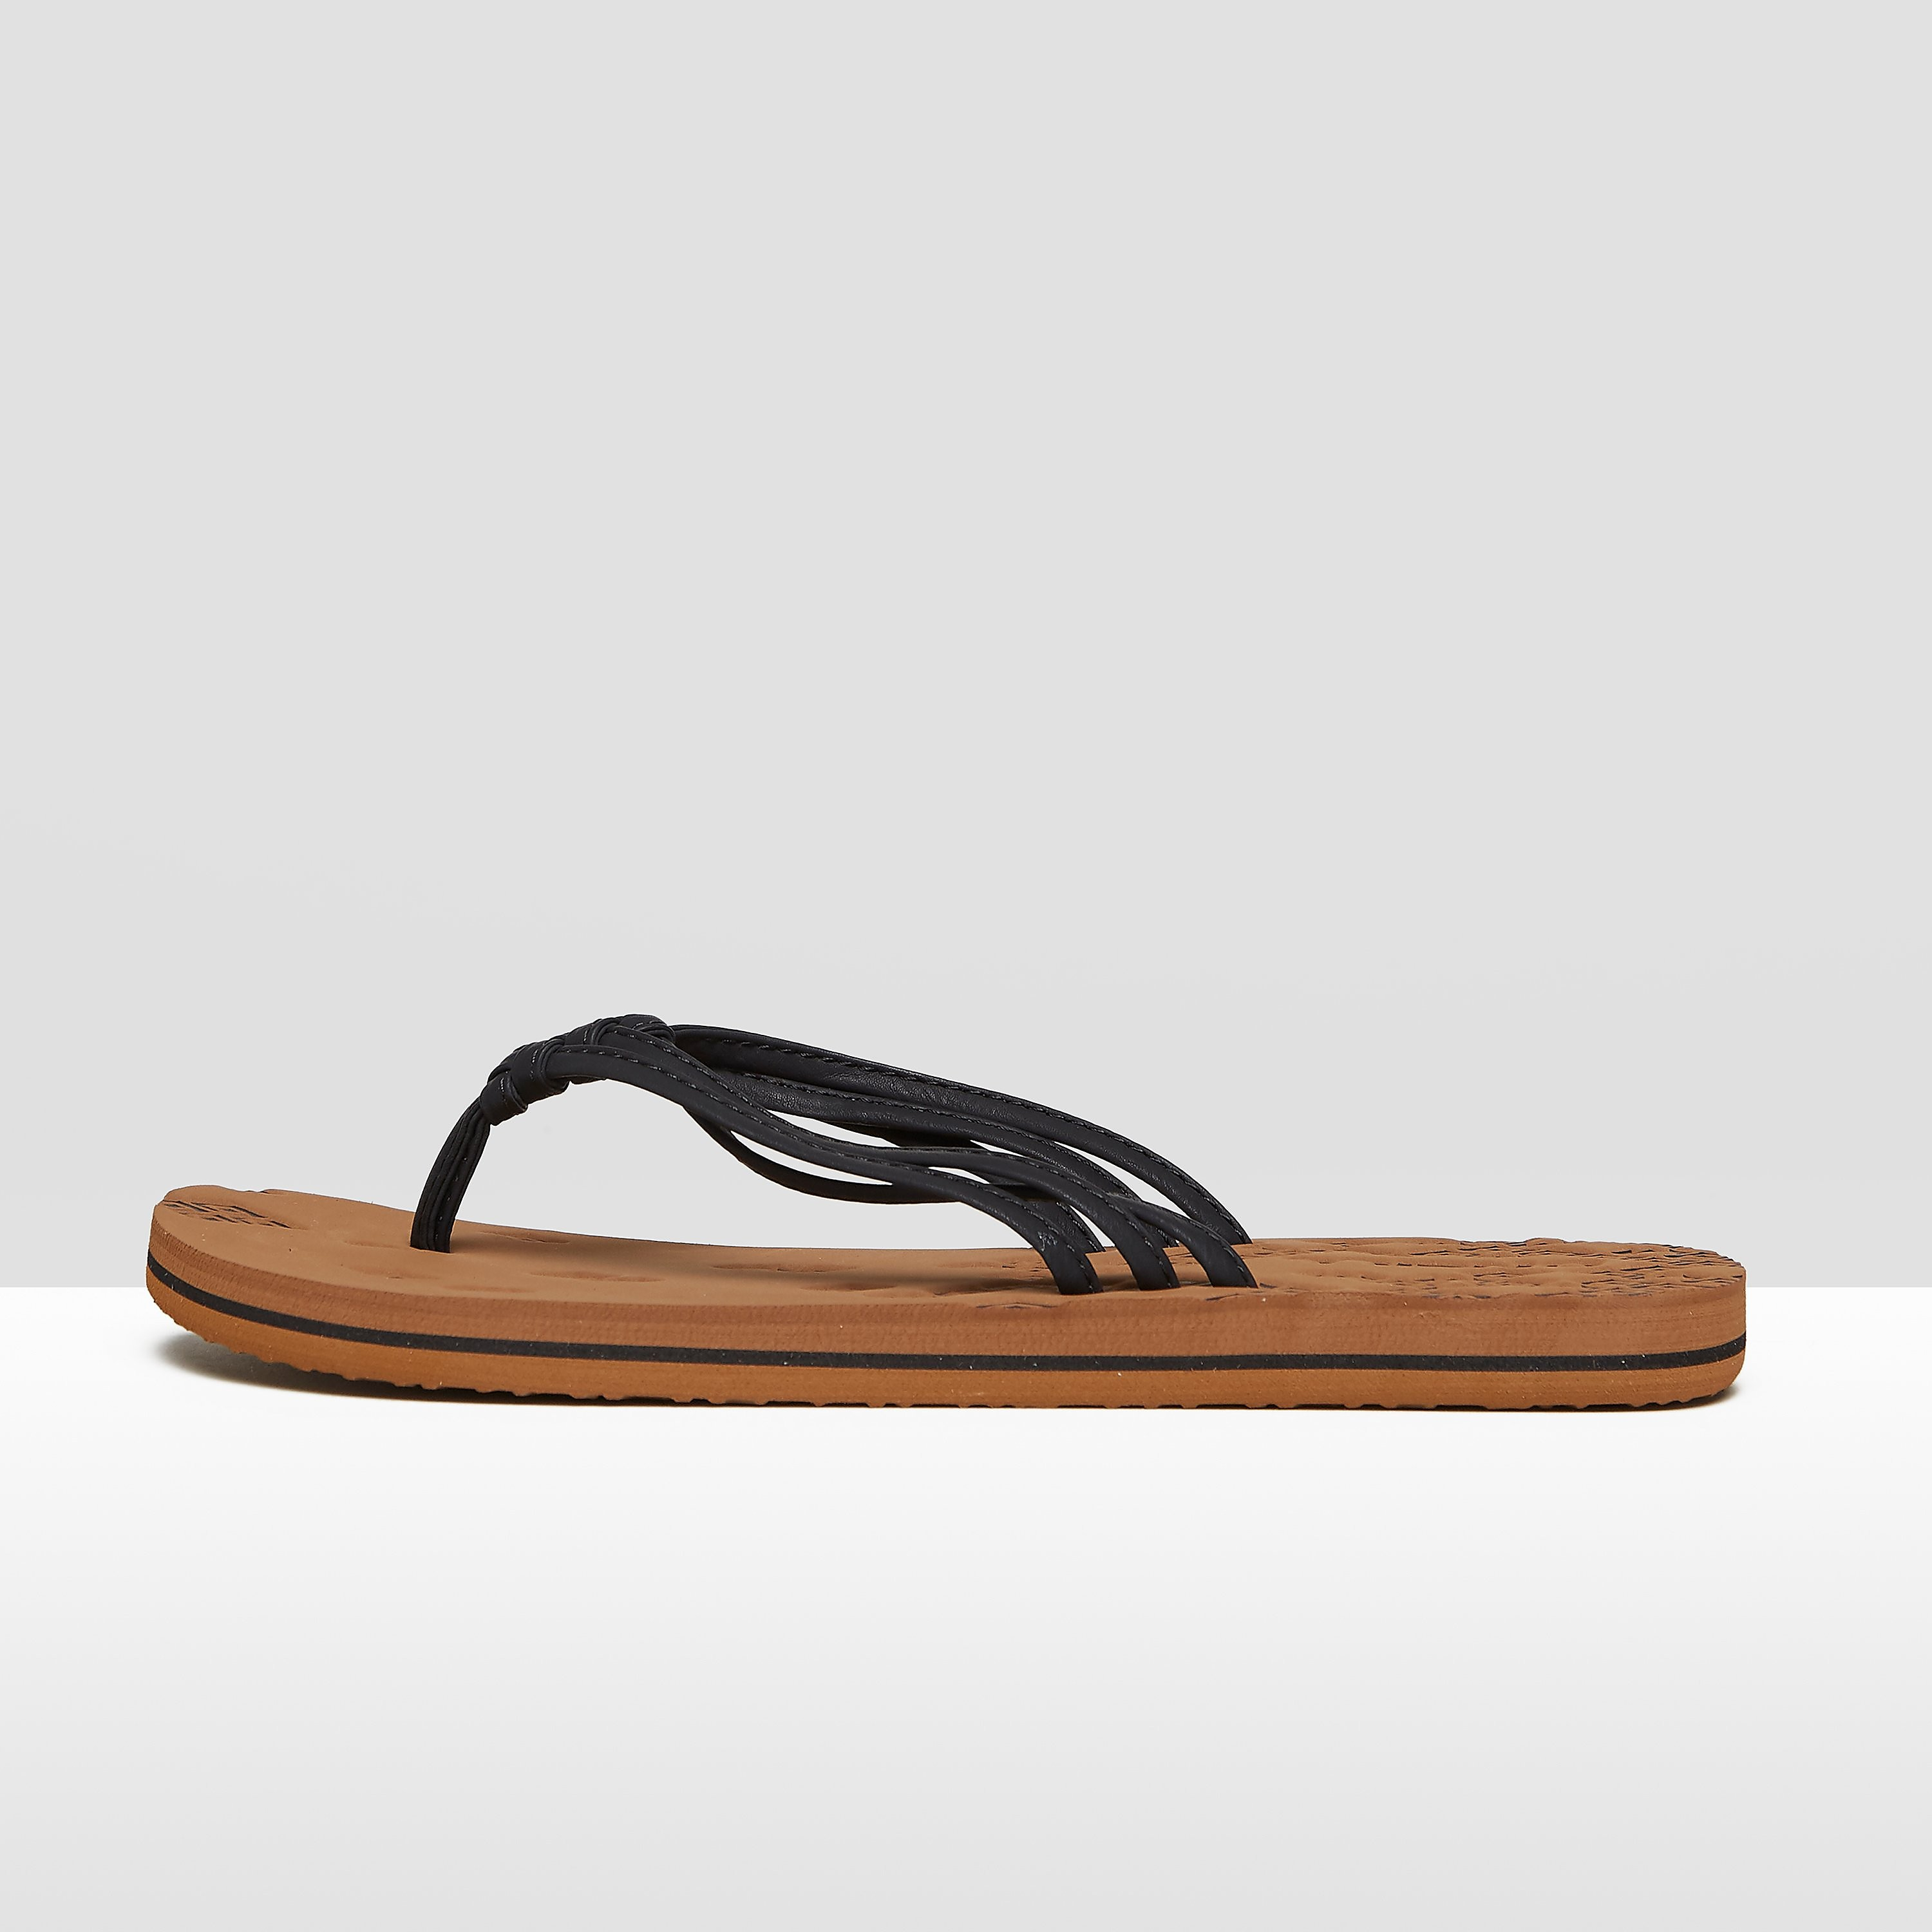 O'NEILL DITSY FLIP FLOP SLIPPERS DAMES